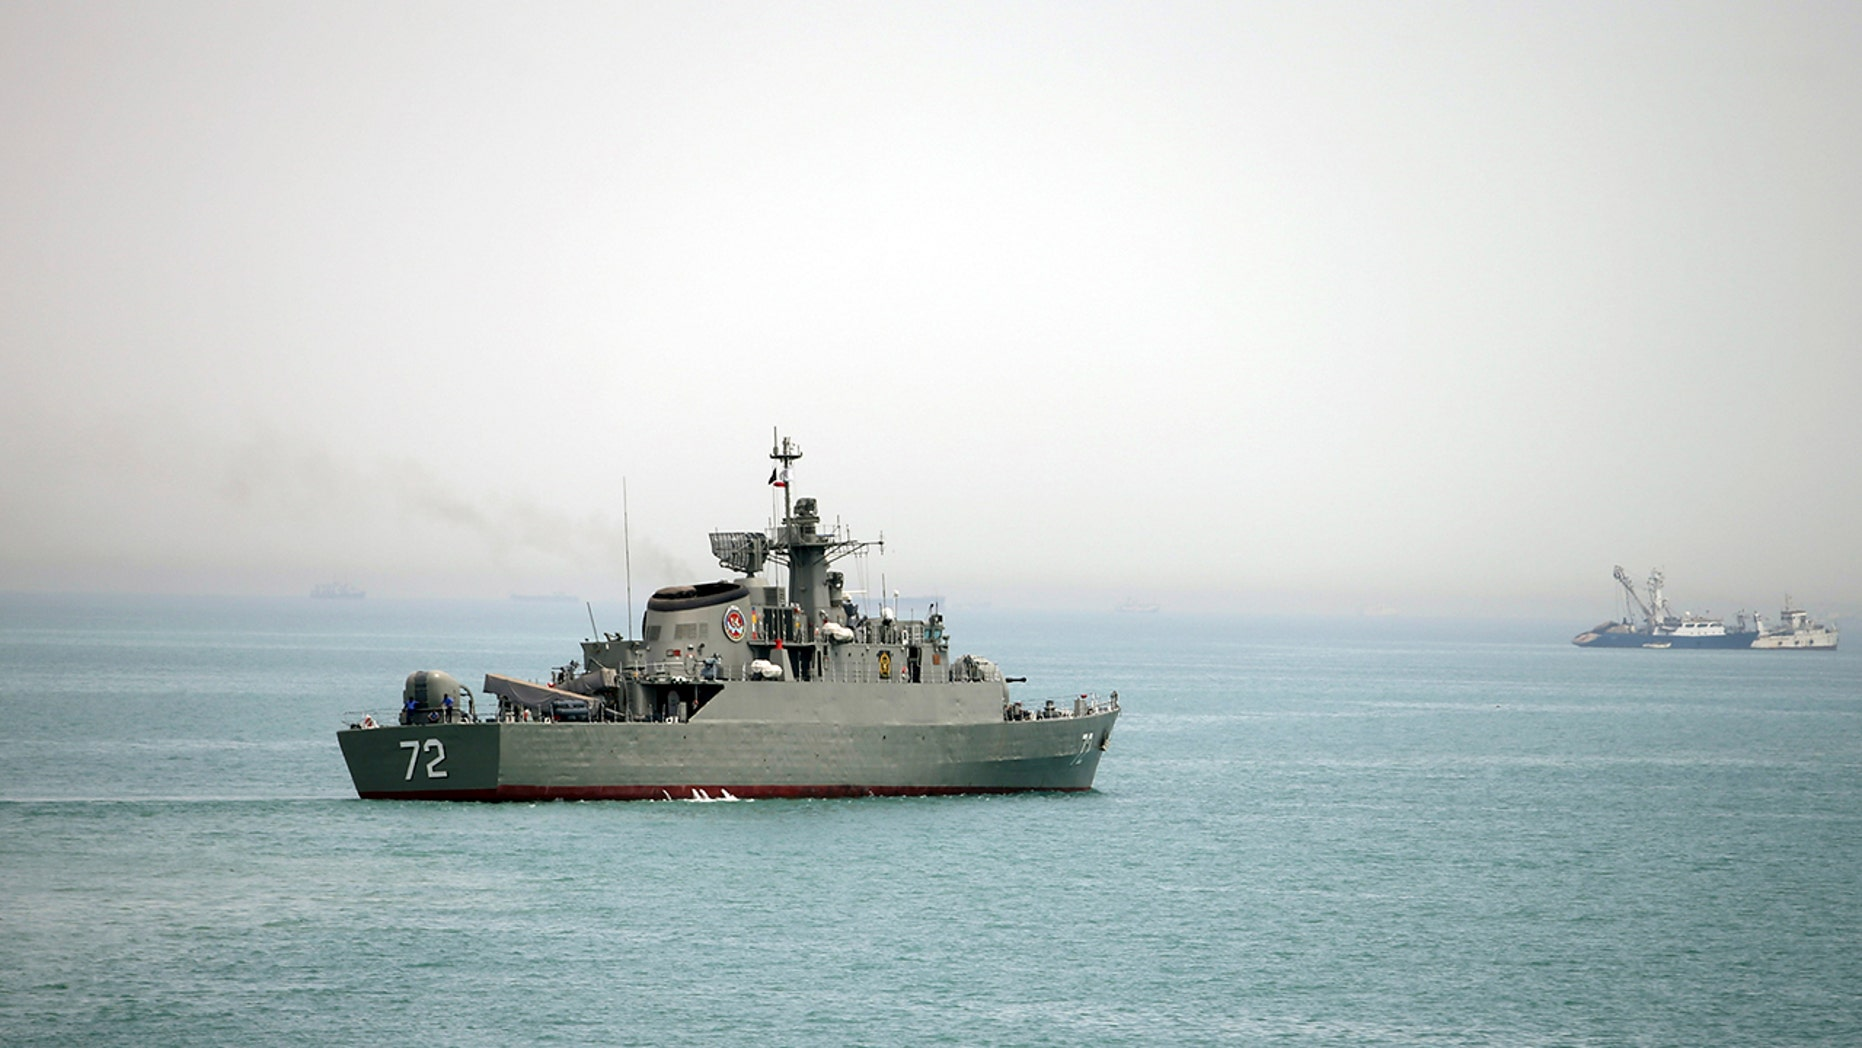 Iran began a large-scale exercise in the Strait of Hormuz involving more than 50 small boats that is expected to last several hours.